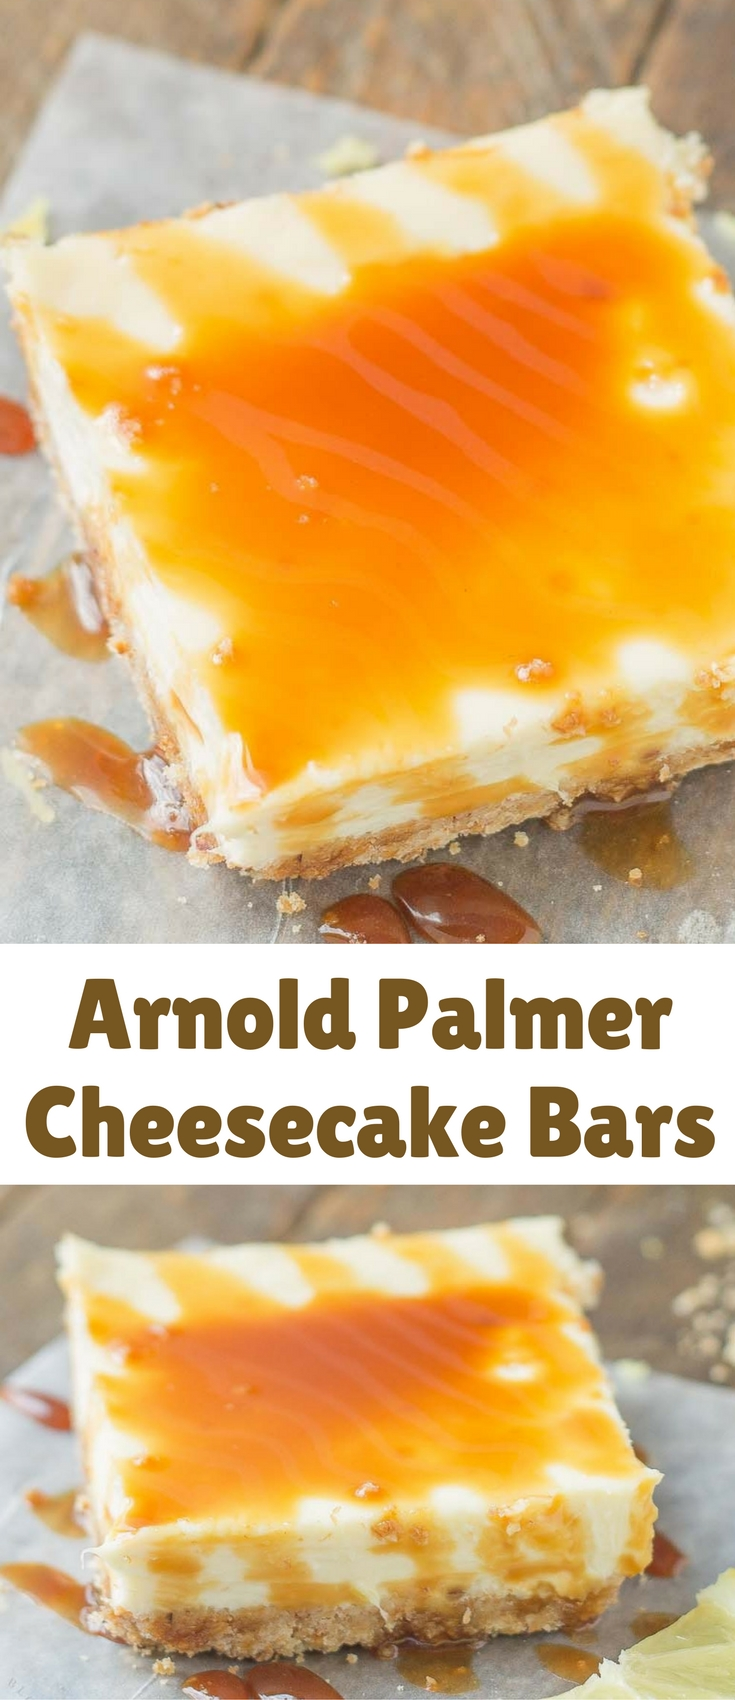 Tangy, tart lemon cheesecake bars are topped with a sweet tea caramel sauce to perfectly marry the two together and create Arnold Palmer Cheesecake Bars. Your favorite way to quench your thirst is now in dessert form!